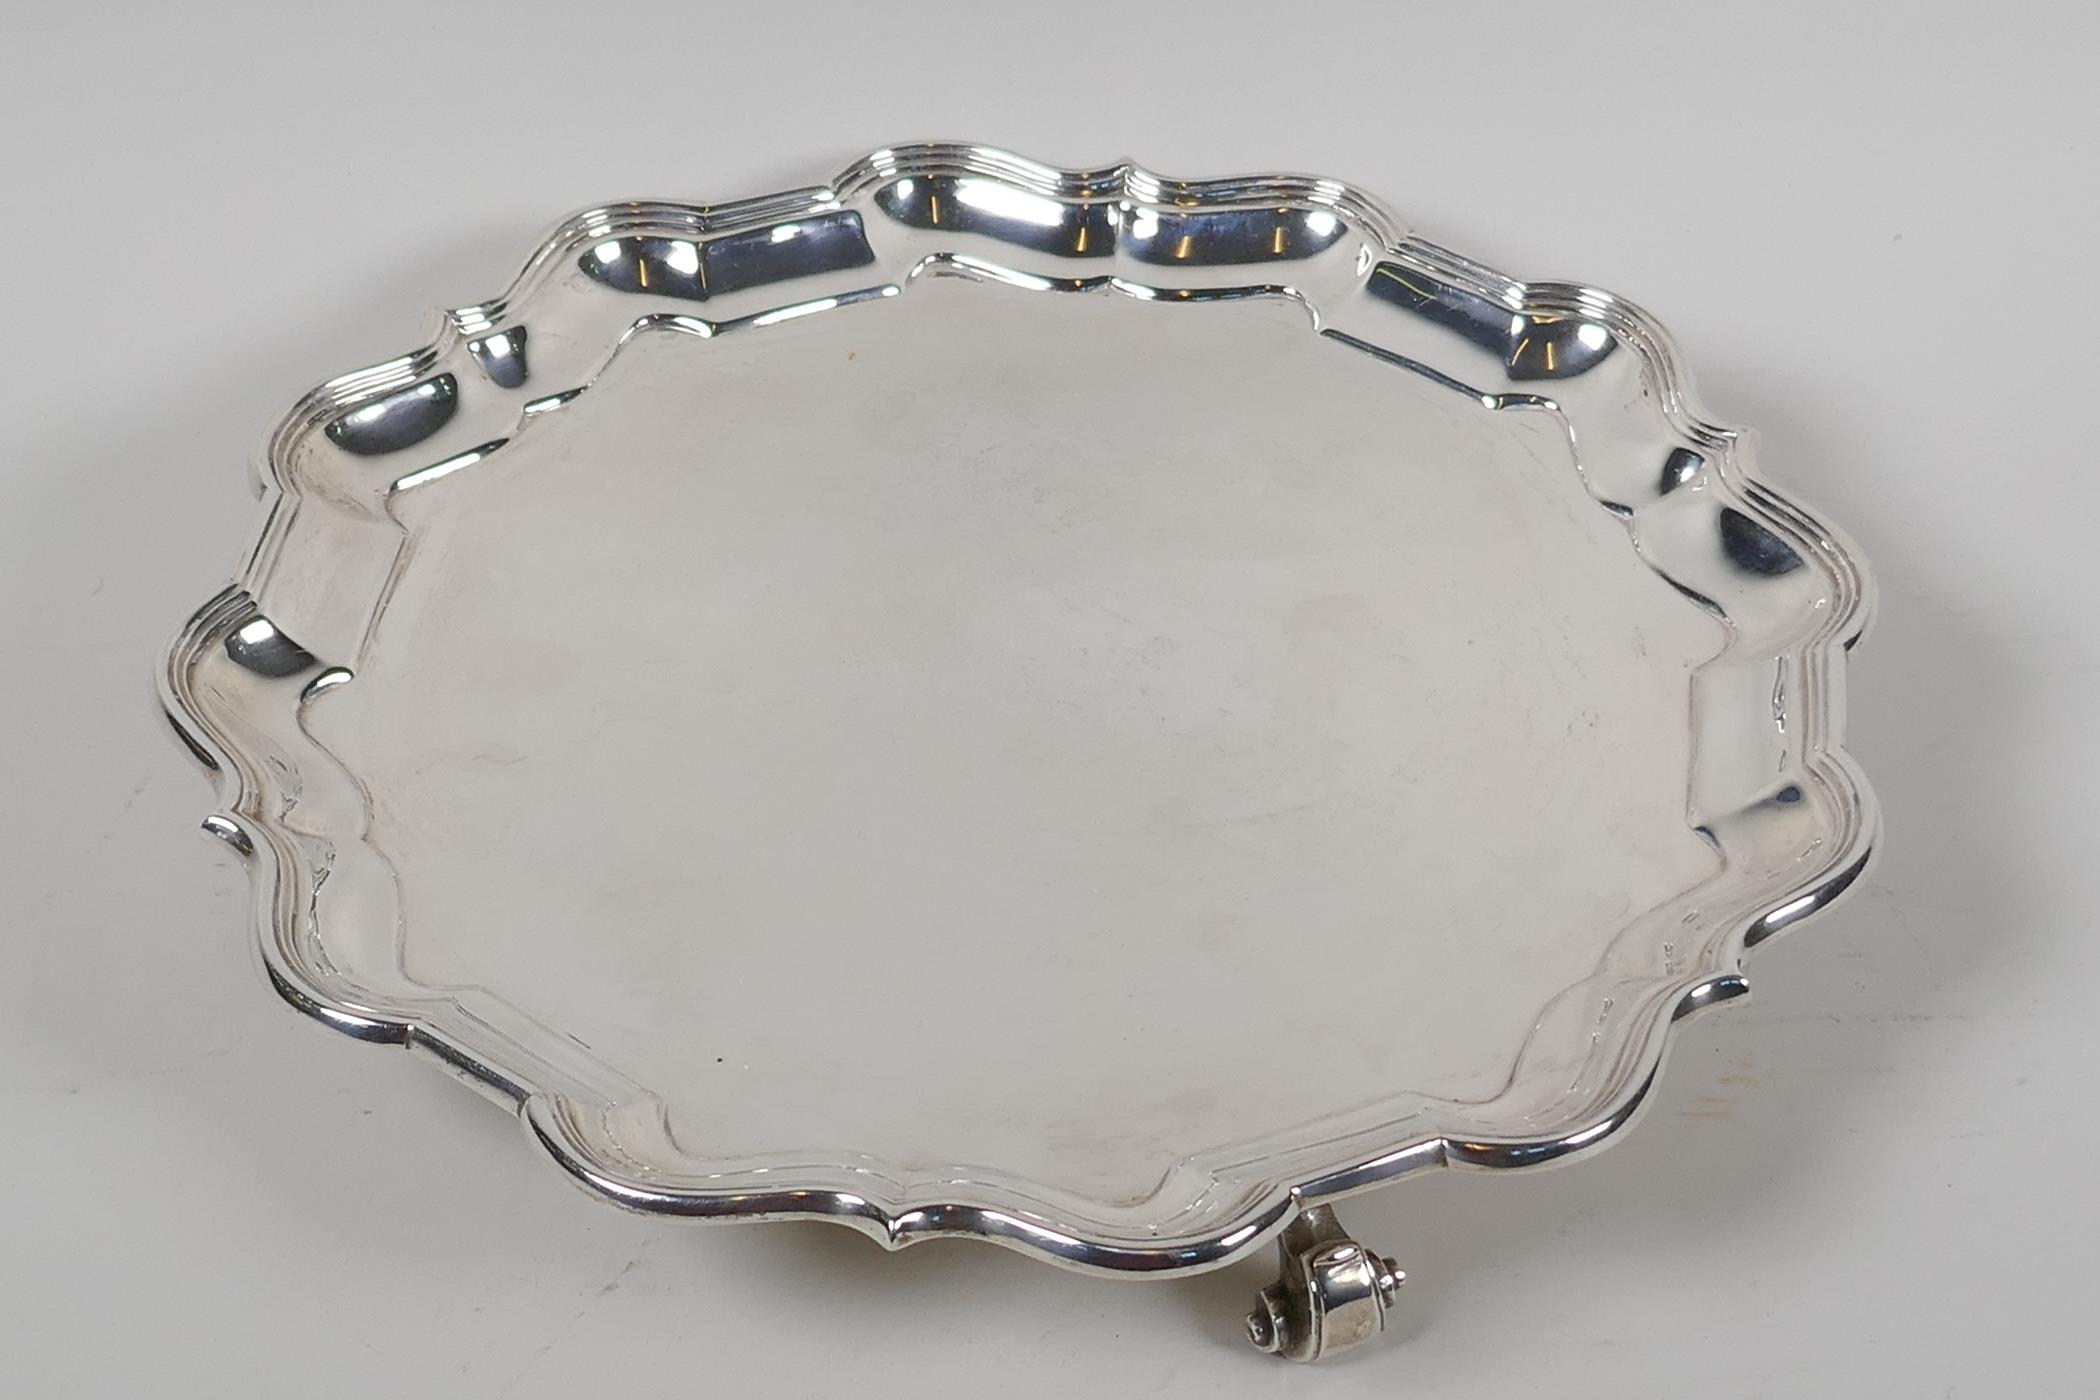 A hallmarked silver serving tray with gadrooned rim, on three cast scroll supports, hallmarked